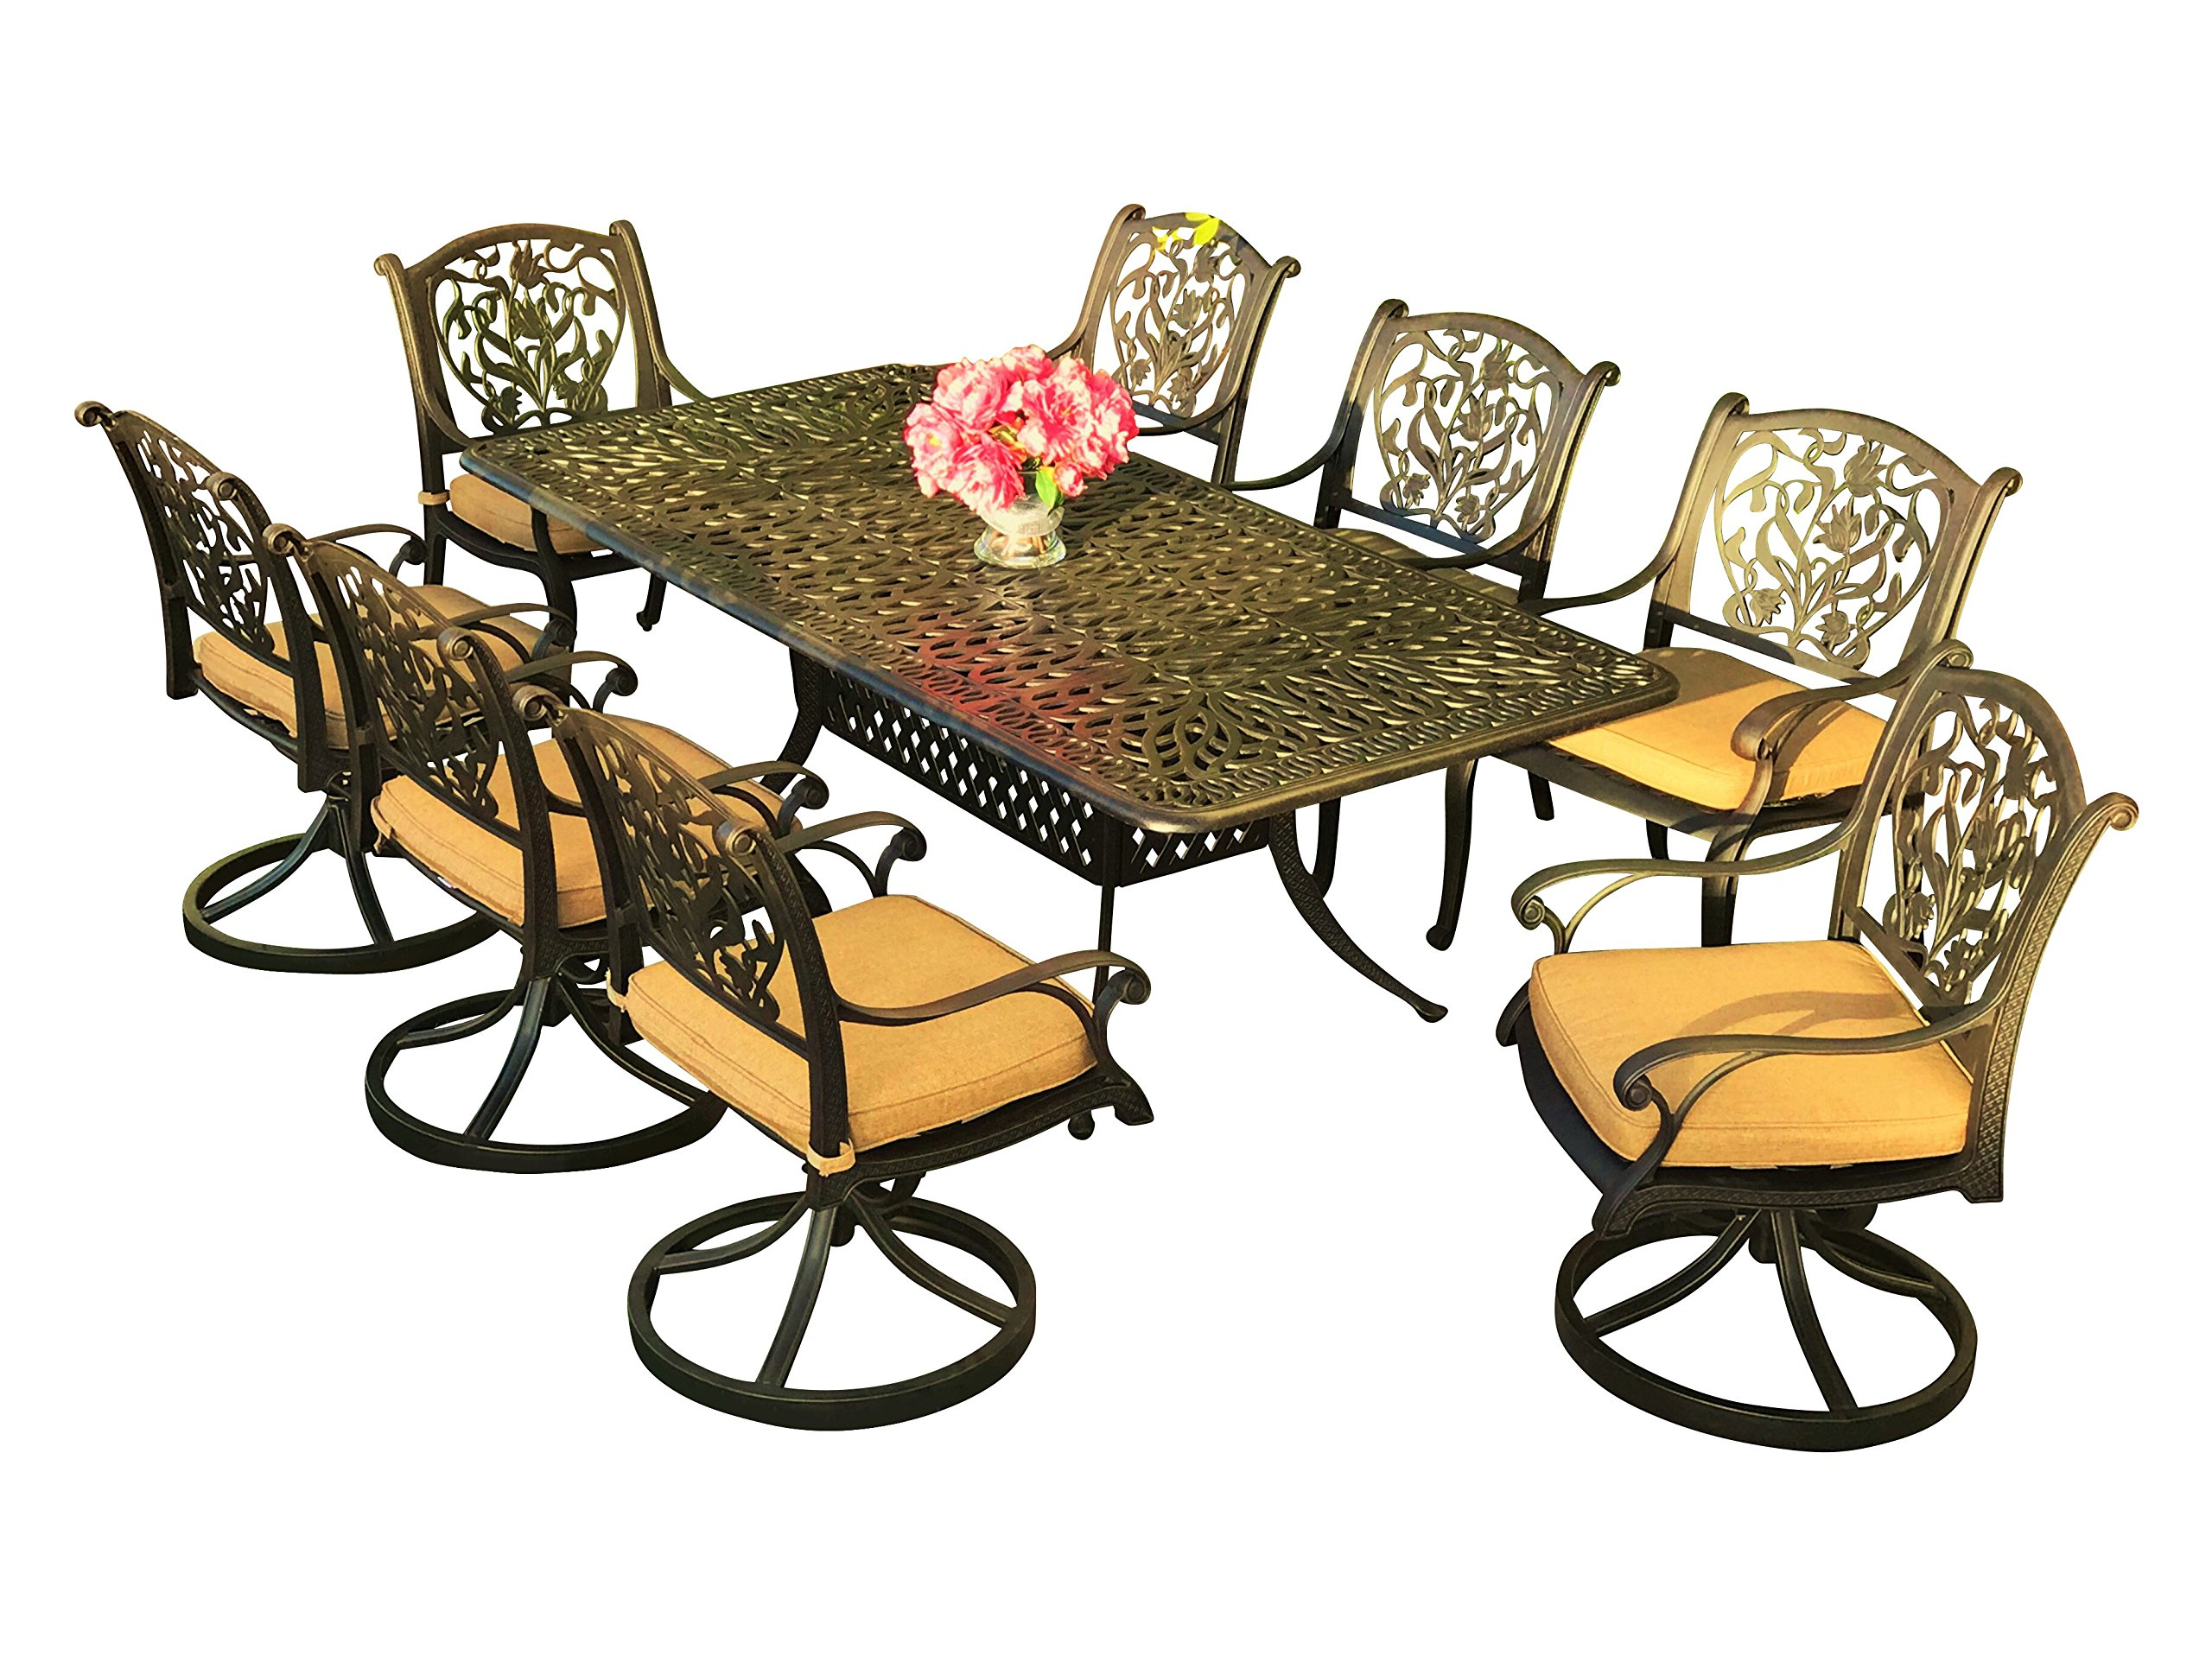 "Everhome Designs - Victoria 9-Piece 84"" Rectangular Cast Aluminum Patio Dining Set with Premium Sunbrella Cushions (8 Swivel Rocking Chairs) - Crafted with solid cast aluminum construction / Features non-rust and weather resistant multi-step hand-finish in Antique Bronze Features adjustable levelers for non-flat surfaces / Includes 2"" center umbrella hole with cover (1) Dining table dimensions: 84L x 42W x 29H inch / Table weight: 94 lbs (Assembly required) - patio-furniture, dining-sets-patio-funiture, patio - 91l T8a%2B9HL -"